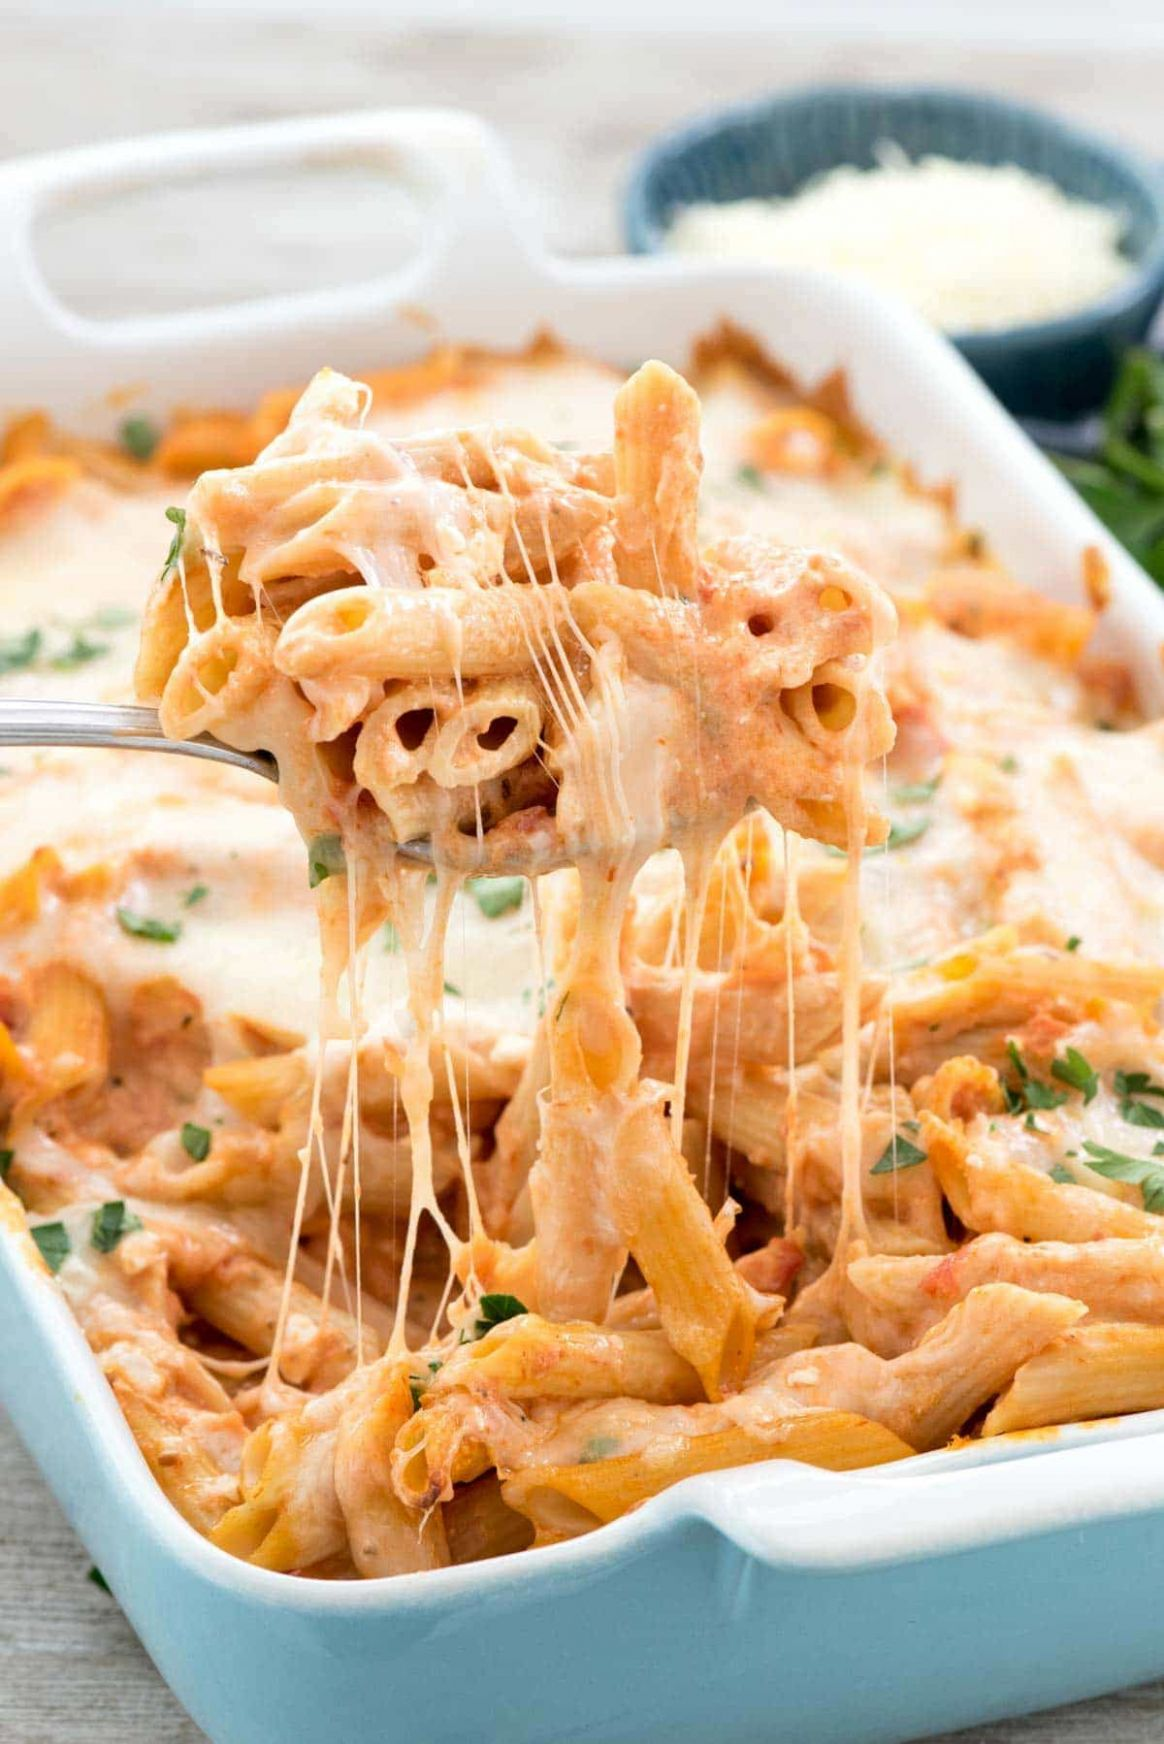 Easy Baked Penne - Recipes Pasta Casseroles